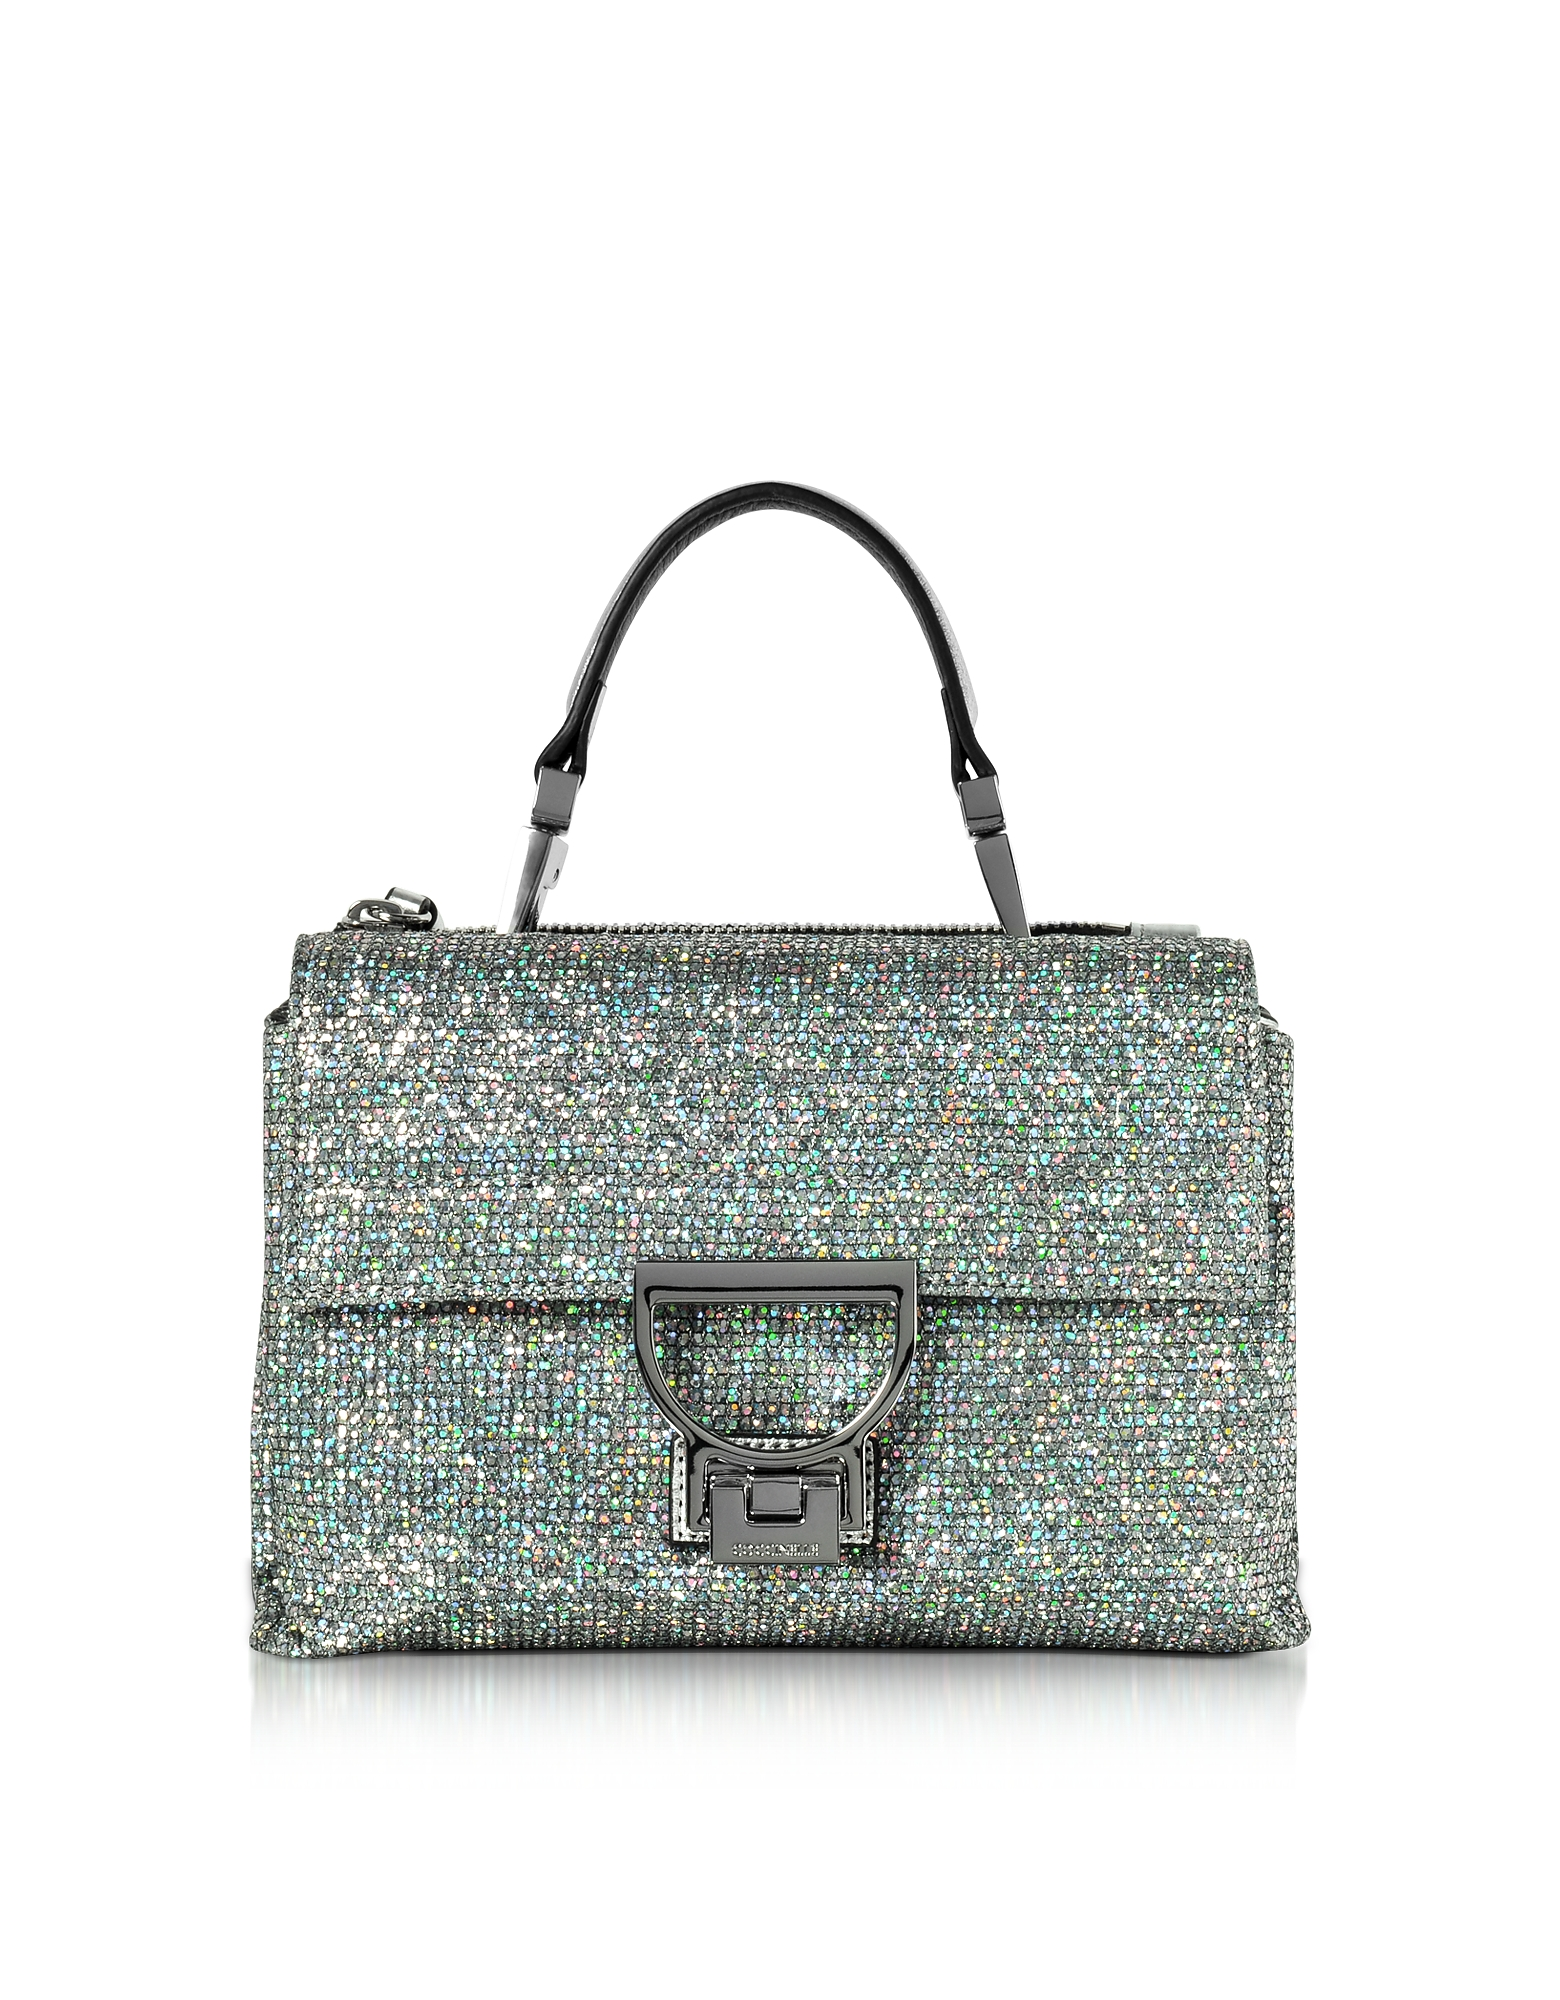 Arlettis Silver Glitter Mini Shoulder Bag